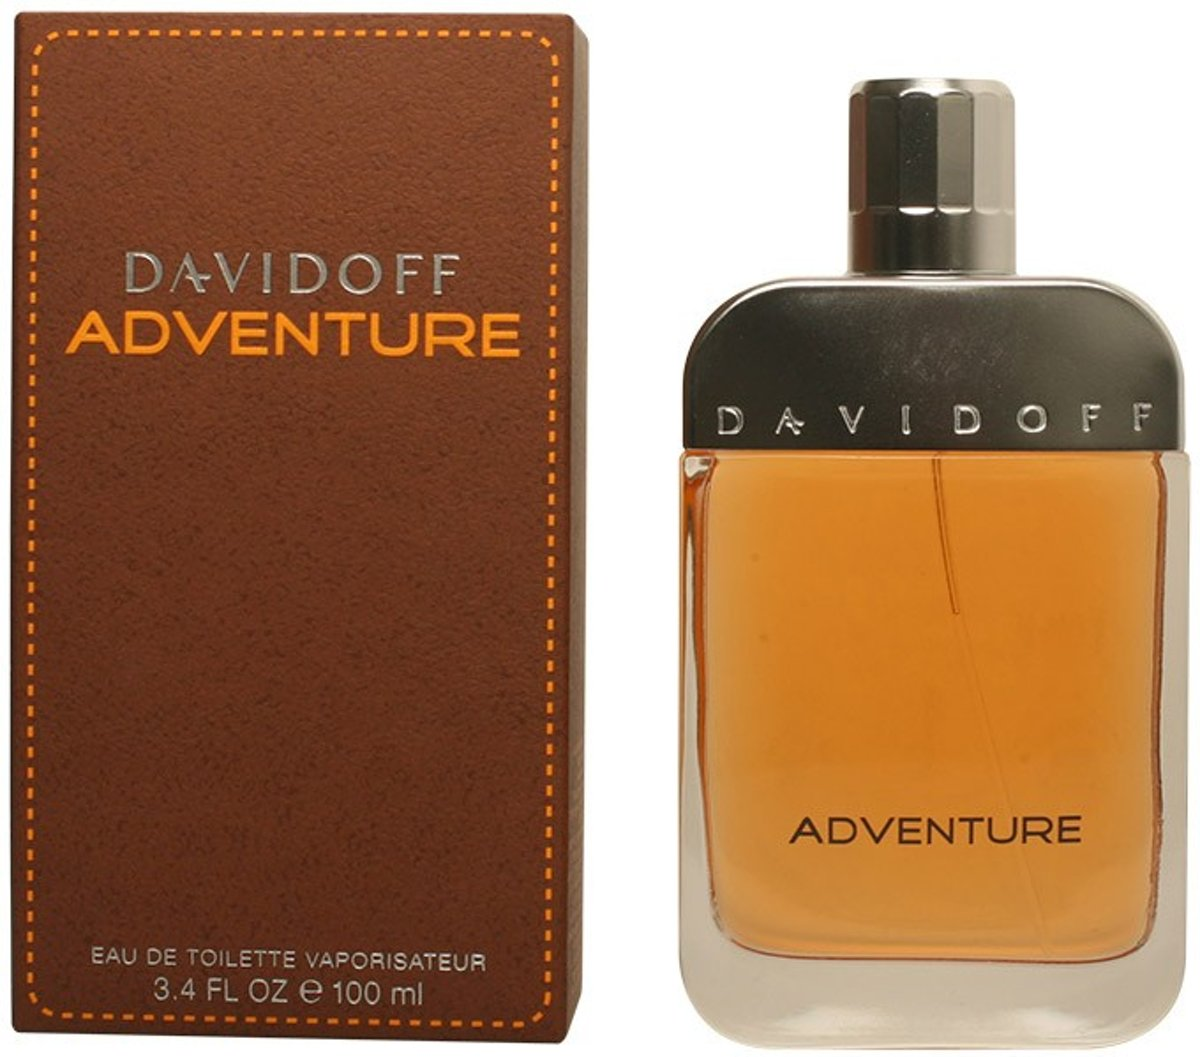 MULTI BUNDEL 2 stuks ADVENTURE Eau de Toilette Spray 100 ml